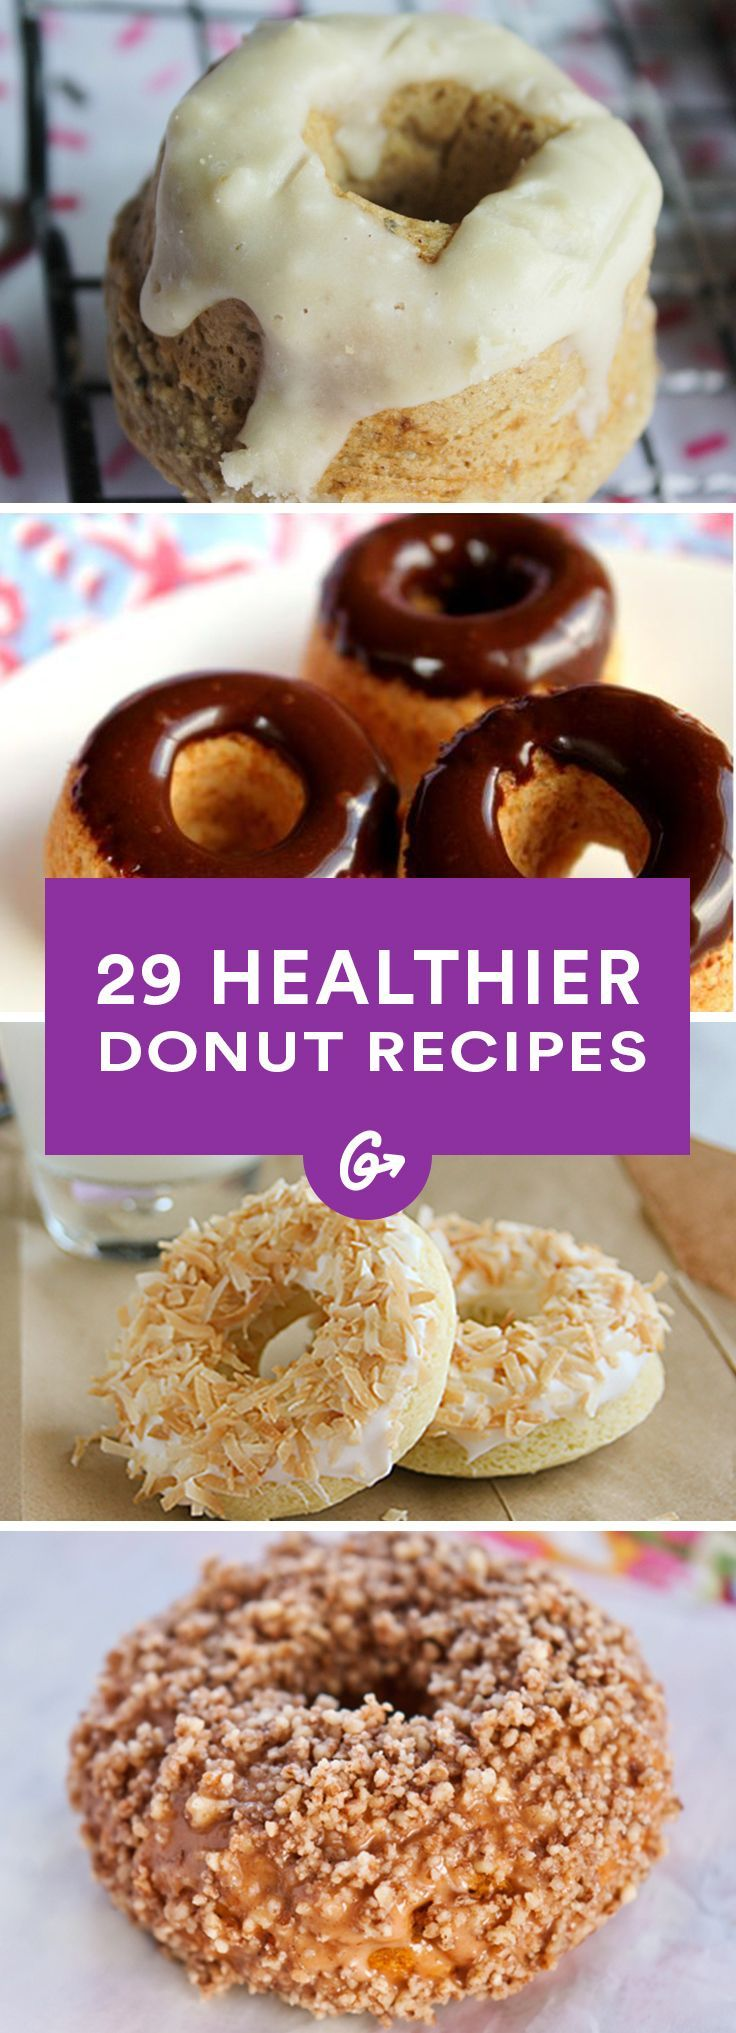 Who doesnt love a good doughnut? #healthy #doughnuts #recipes http://greatist.com/health/healthier-donut-recipes